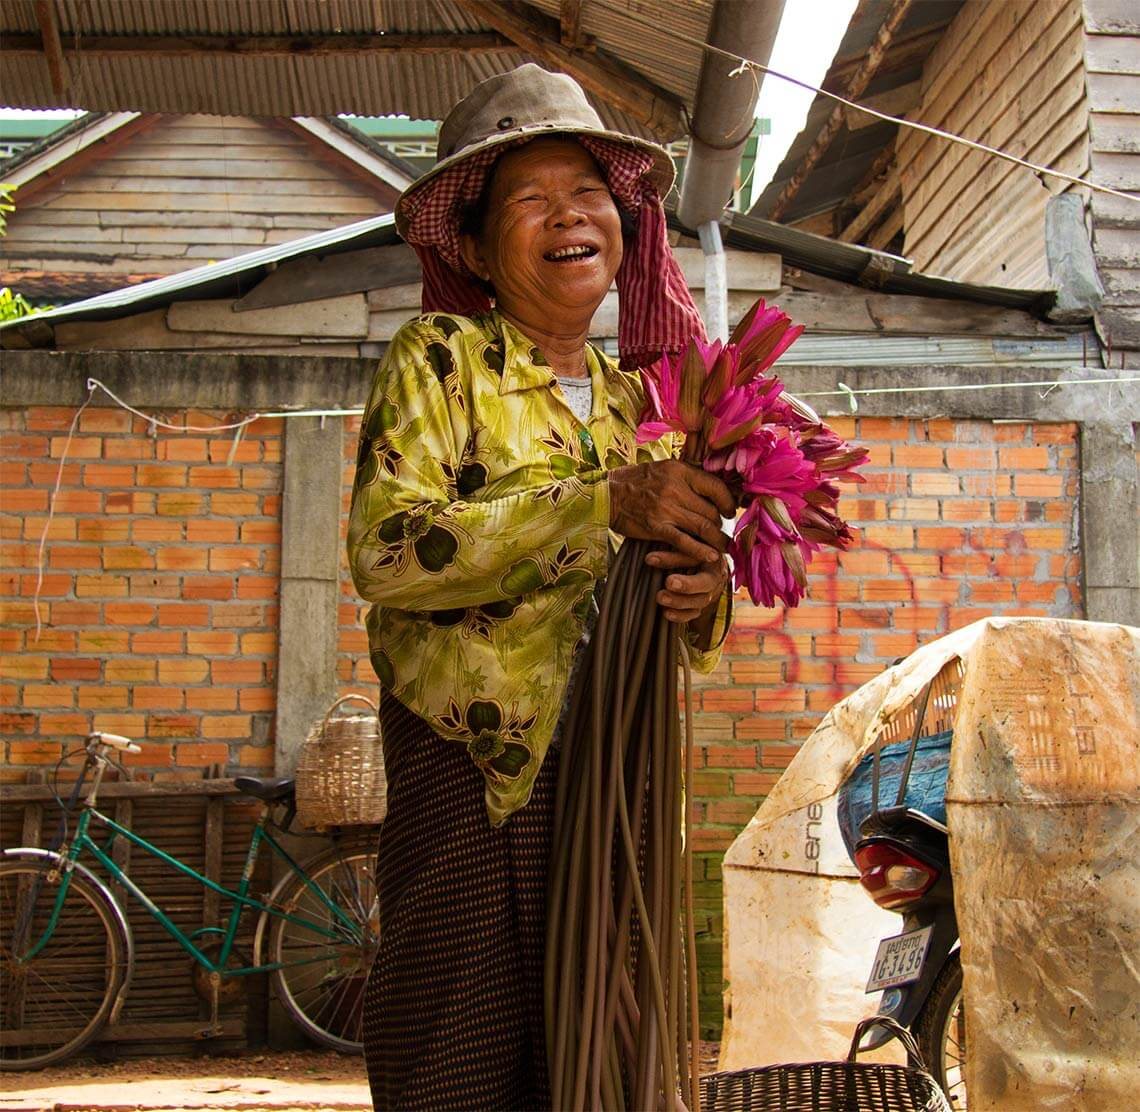 Vendor with lotus flowers at a market in Siem Reap